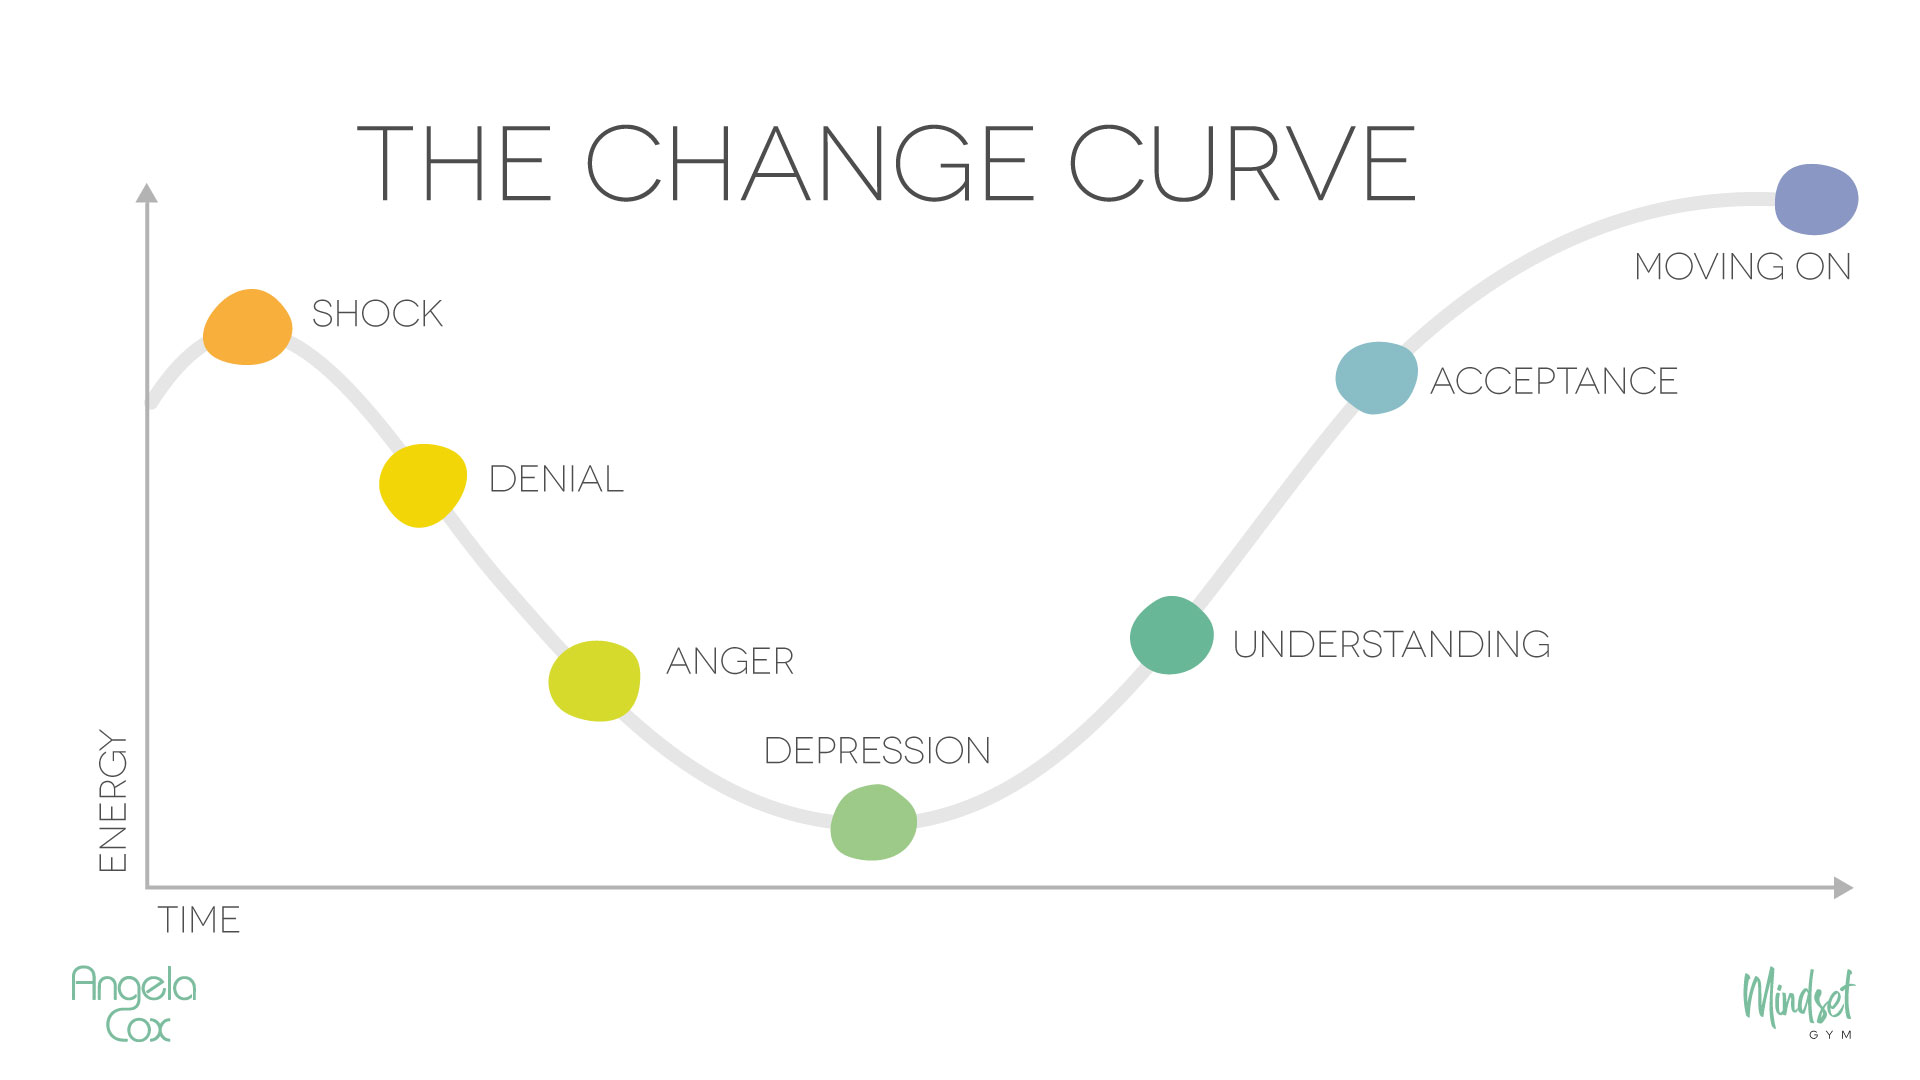 Angela Cox on Change and Coaching Through Uncertainty